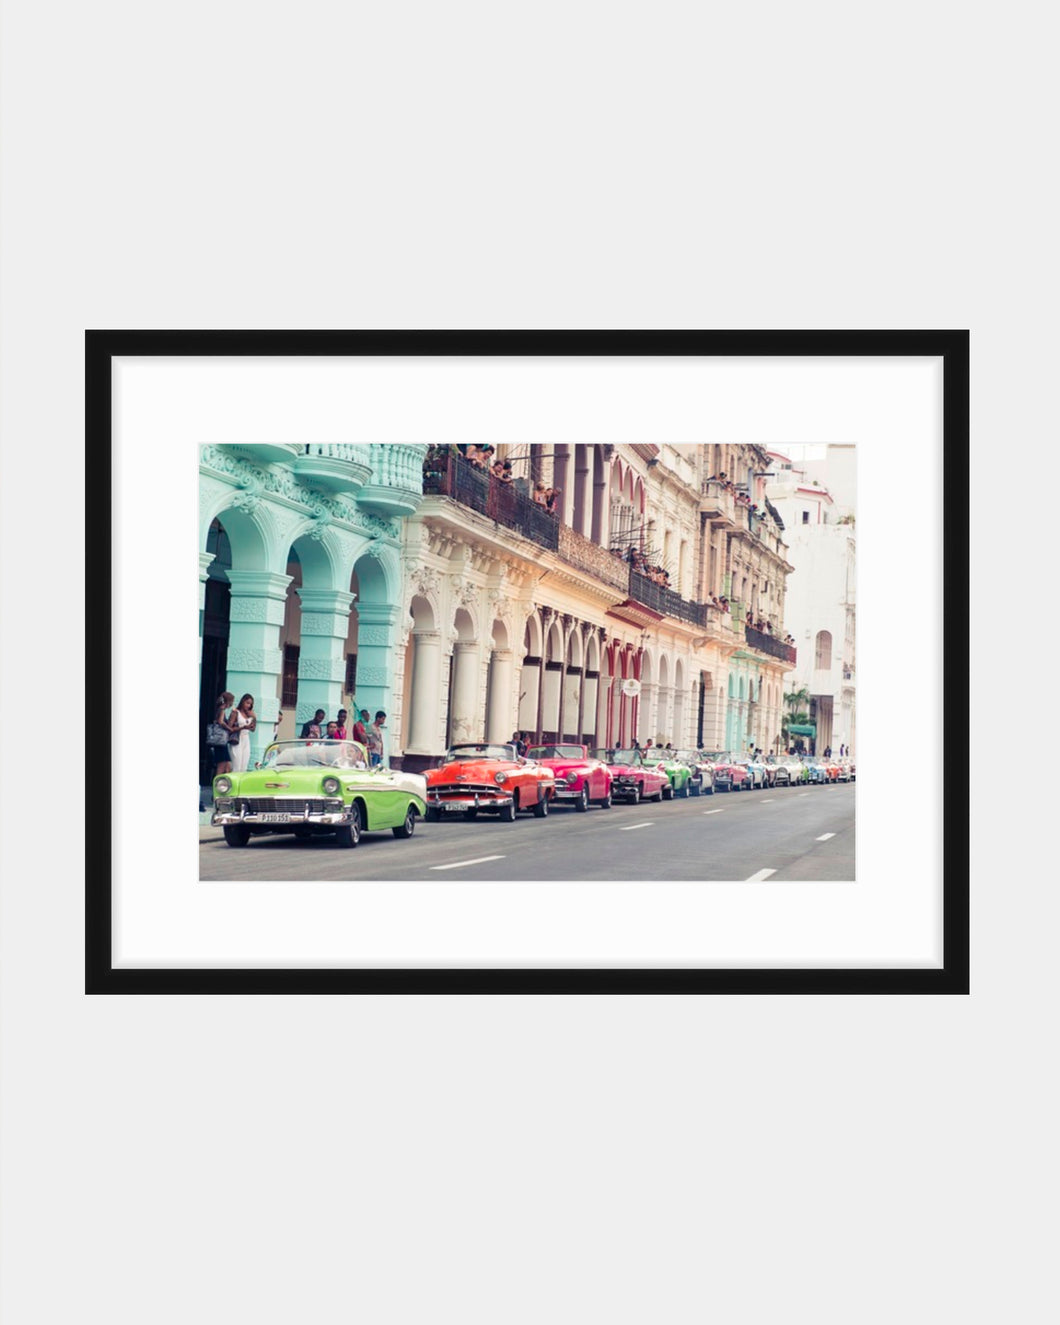 Original Coveteur Print - Chanel Cruise Havana